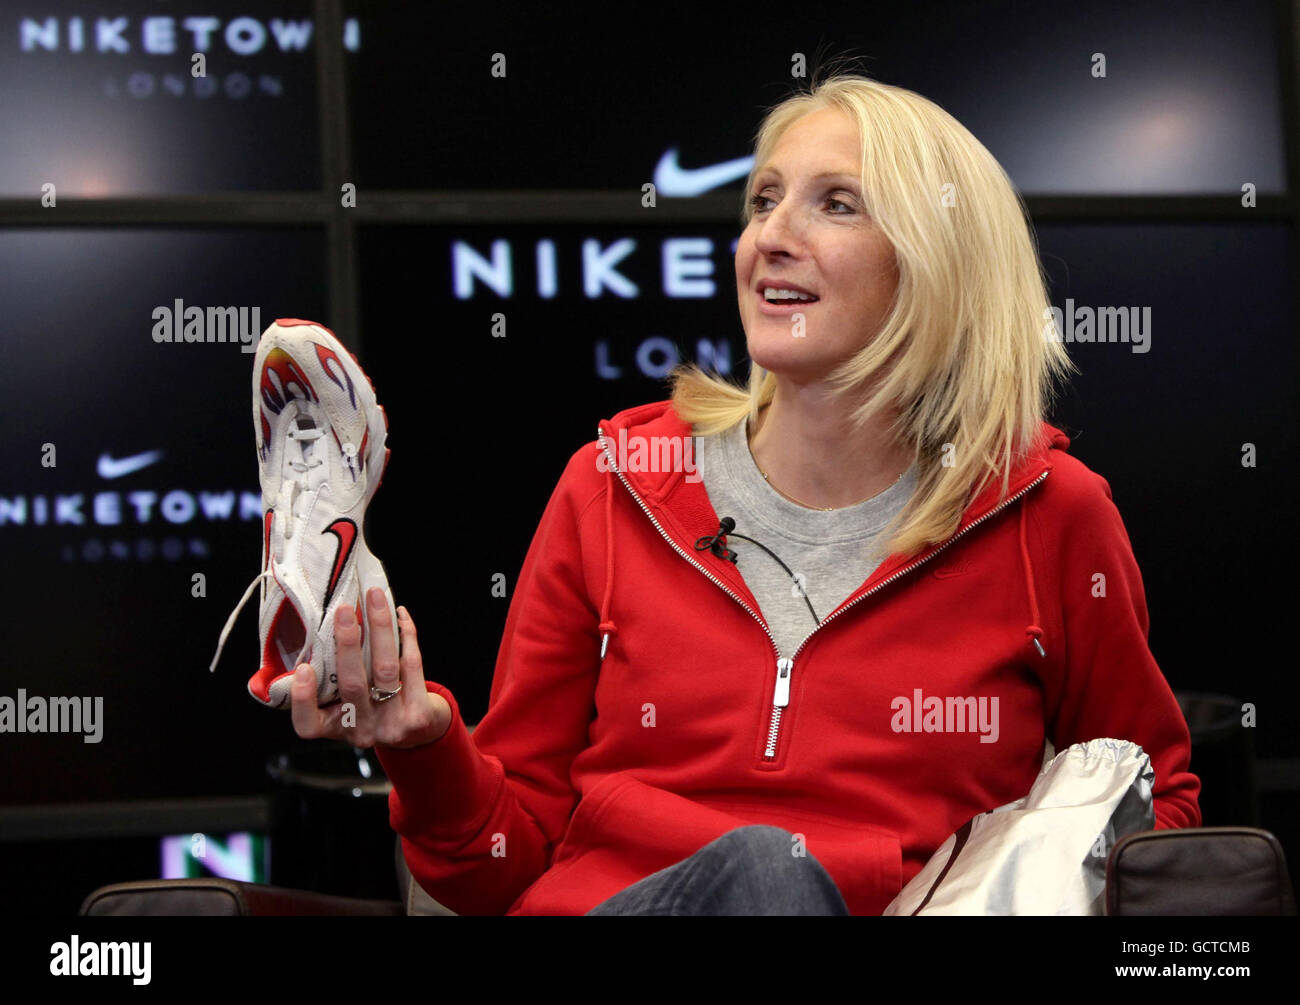 Paula Radcliffe Holds Her Old Nike